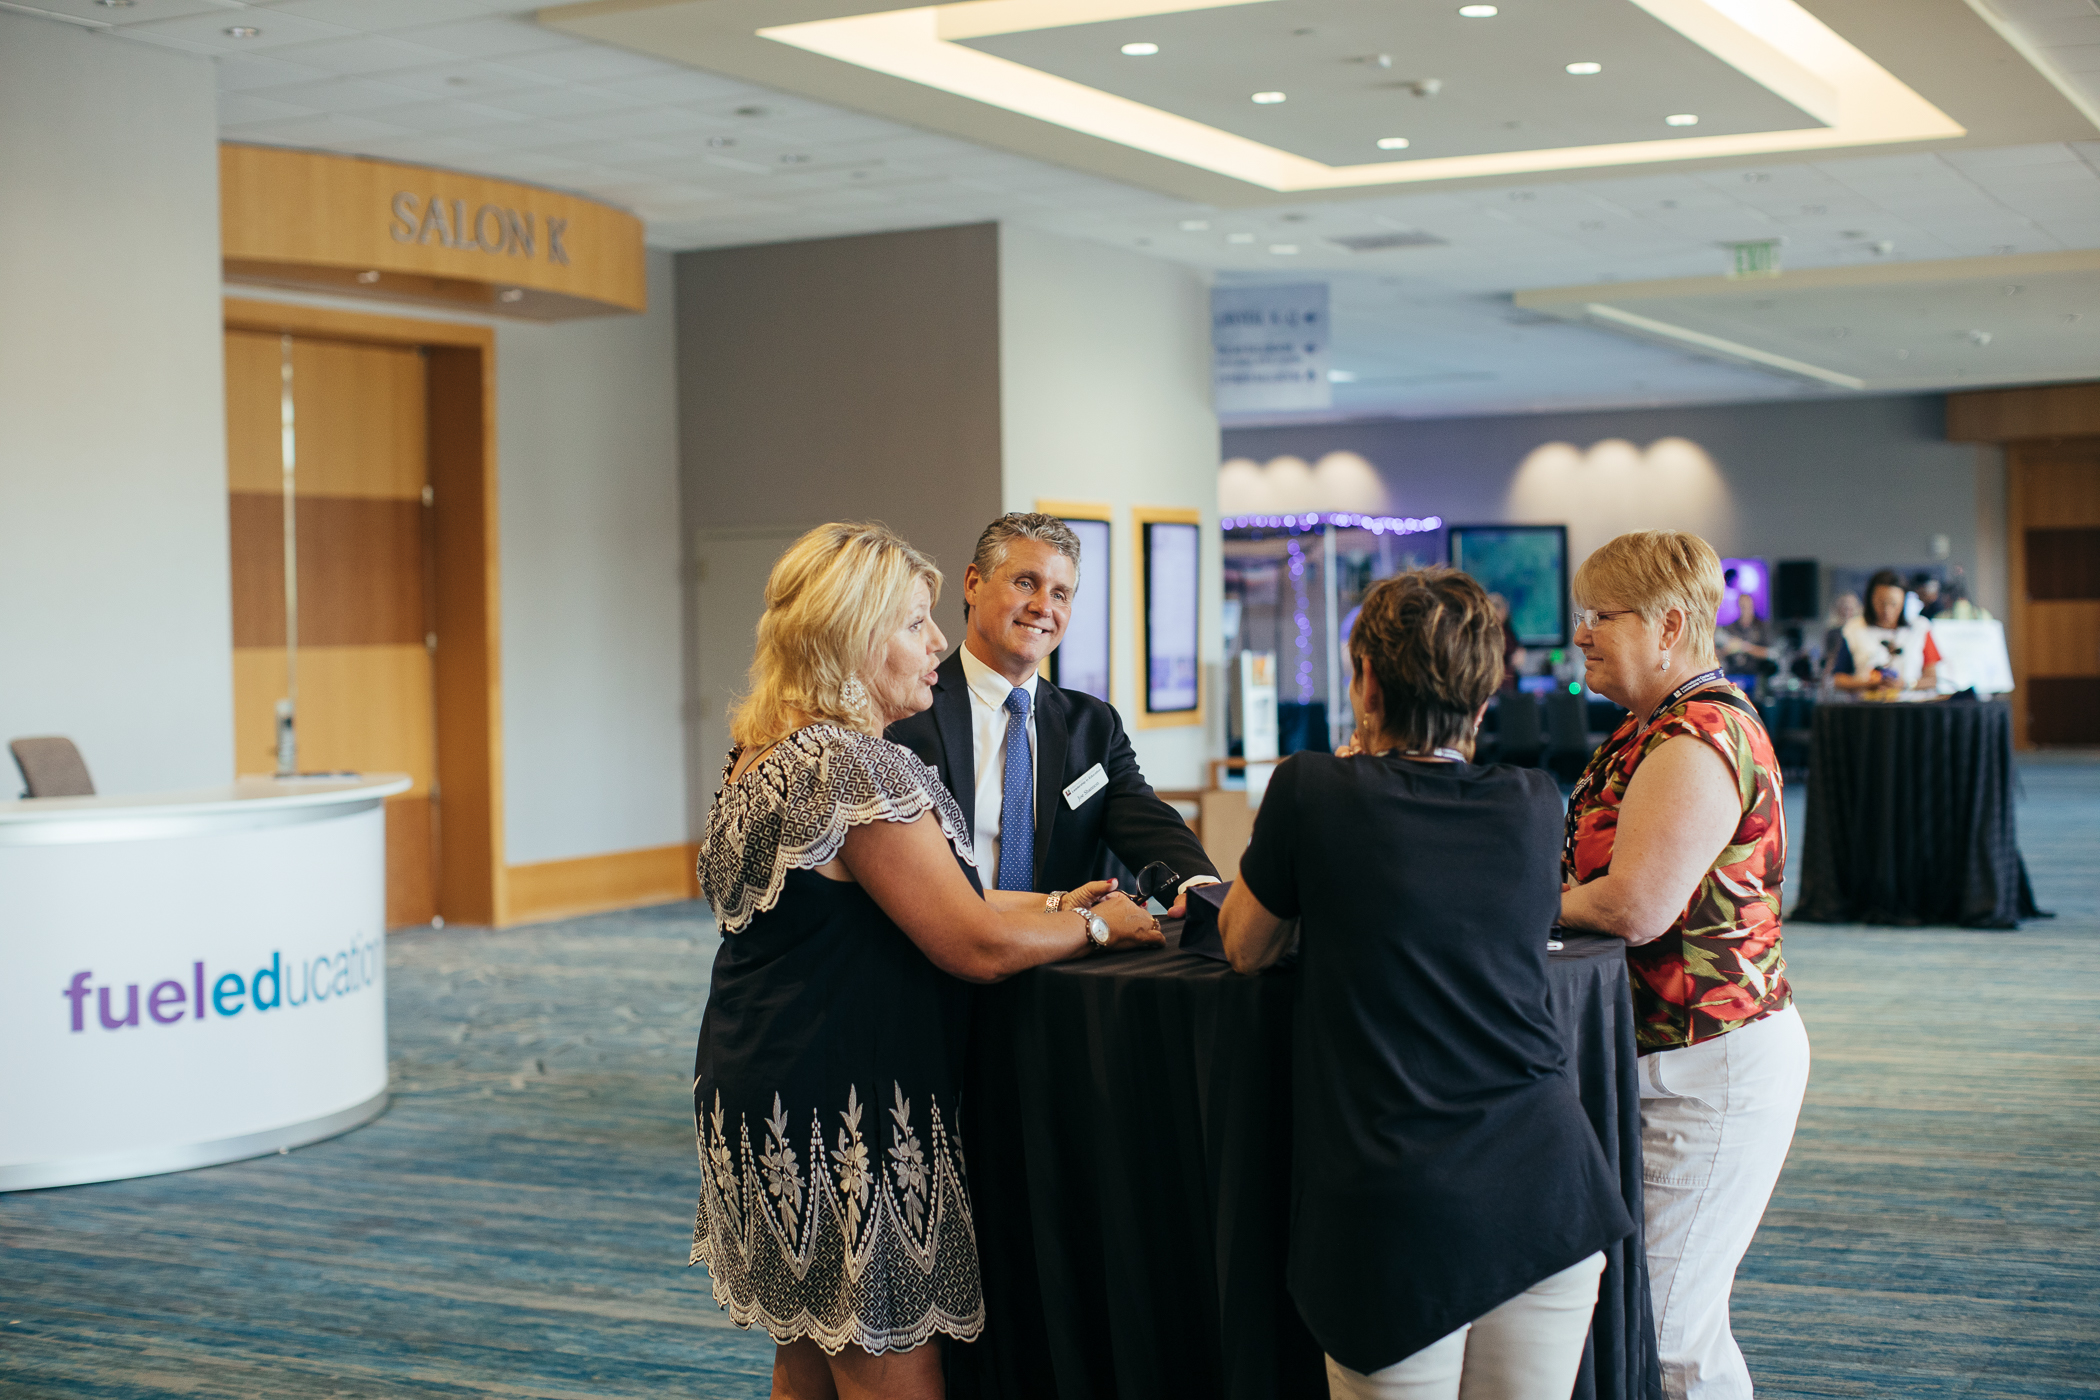 live event commercial photography brand storytelling for education florida conference photographer ©2018abigailbobophotography-21.jpg